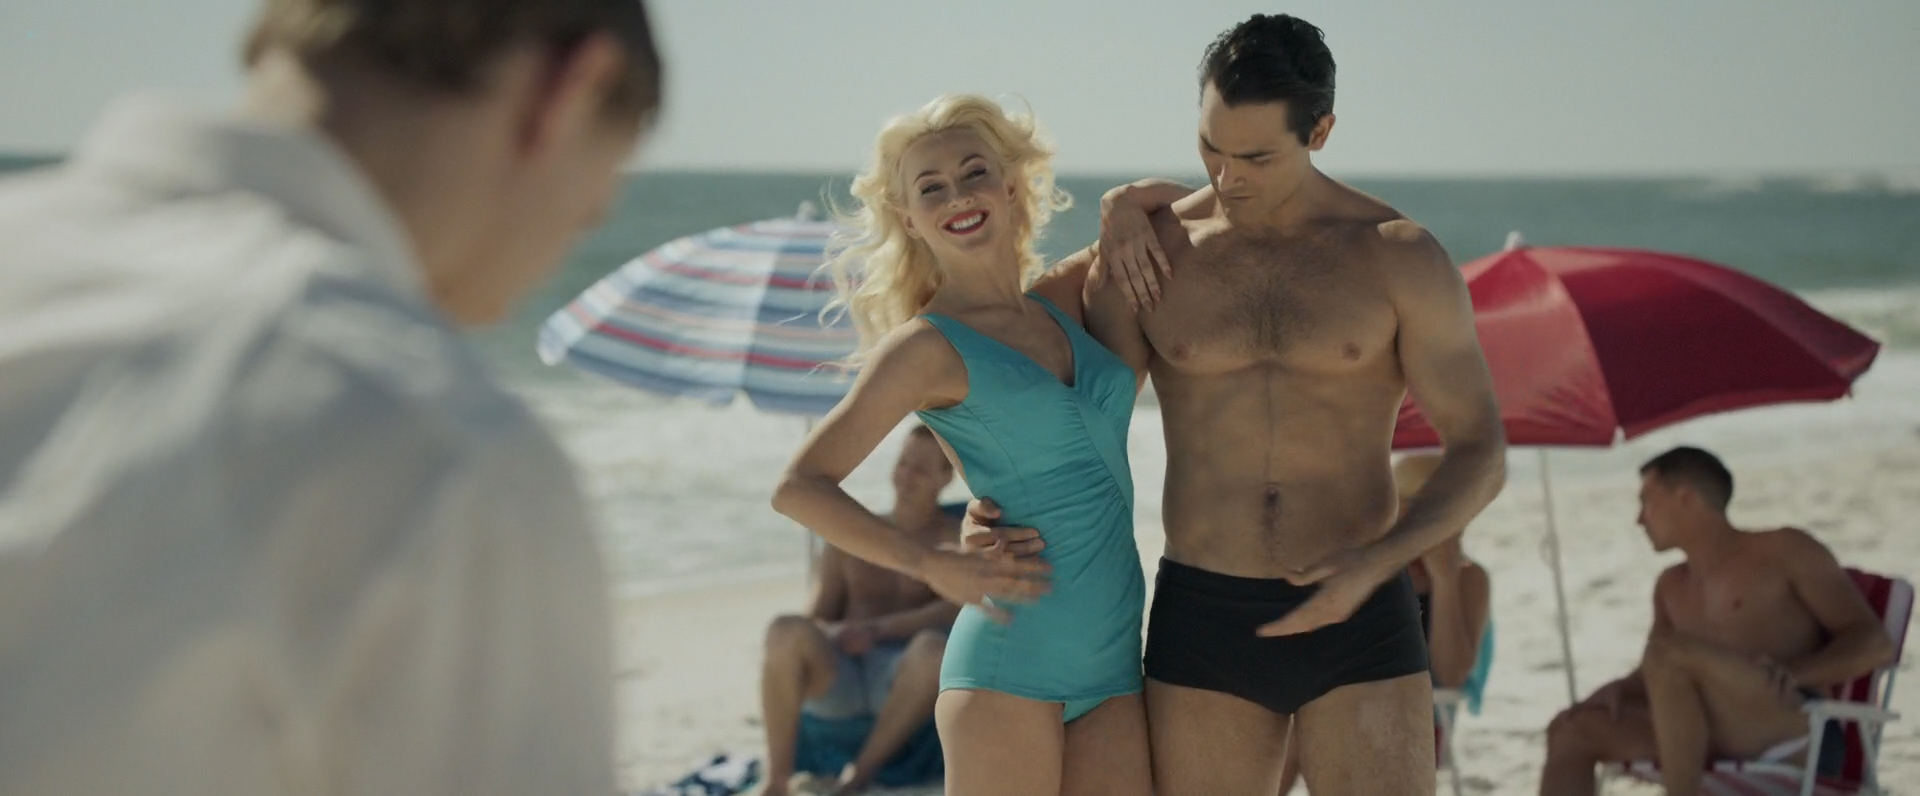 Julianne Hough Hot And Sexy In Bigger 2018 Hd 1080p